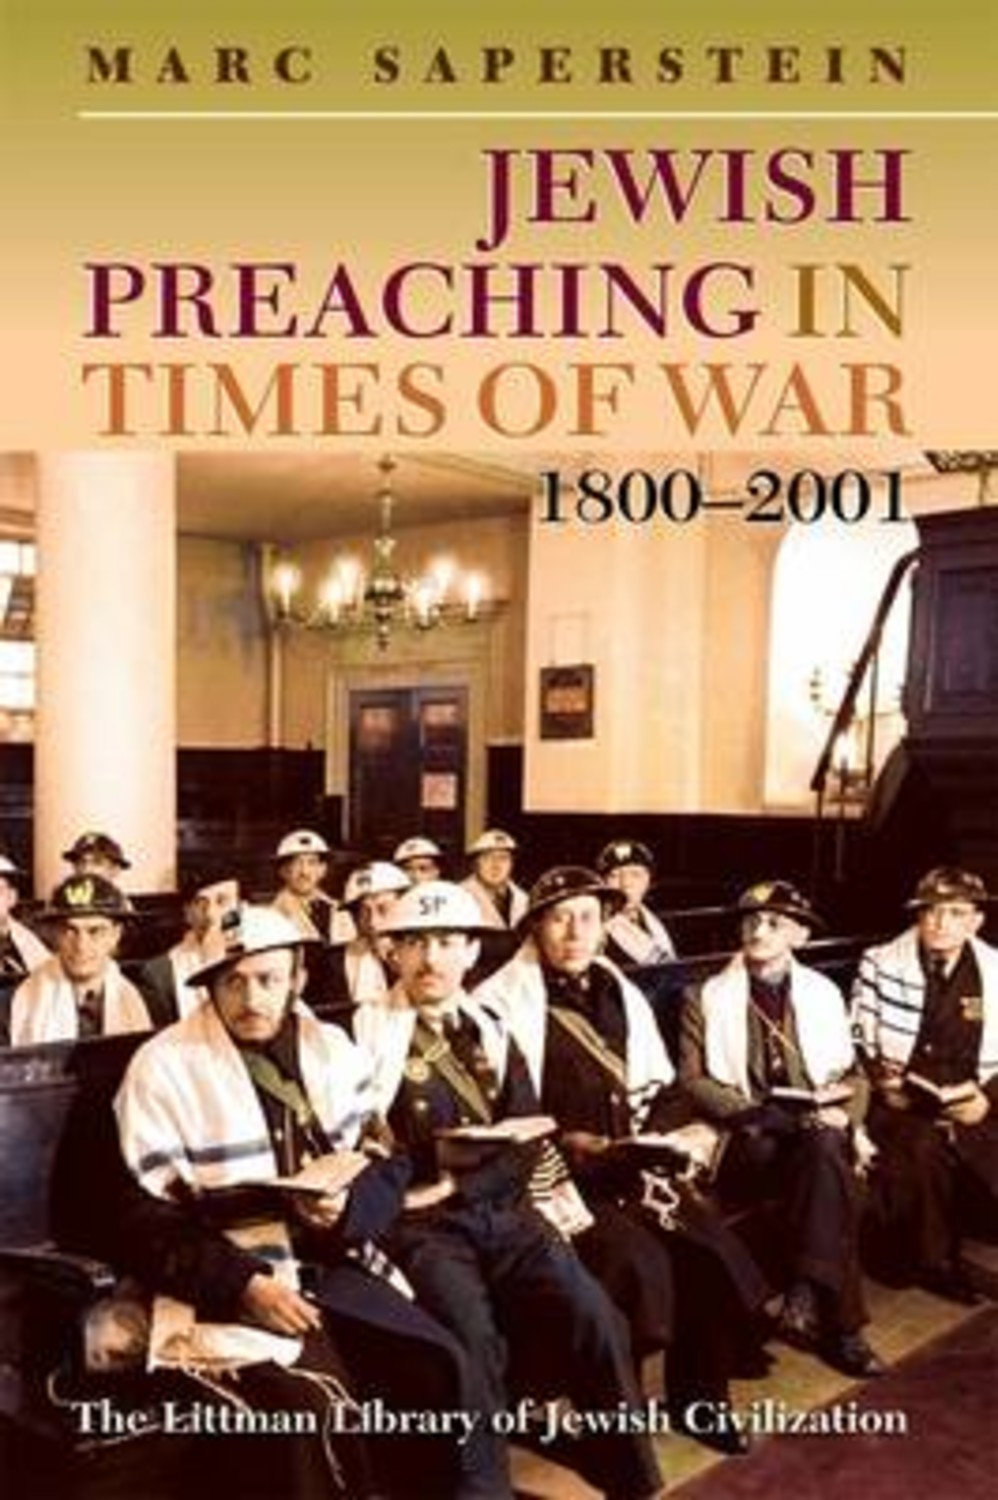 Jewish Preaching in Times of War, 1800 - 2001